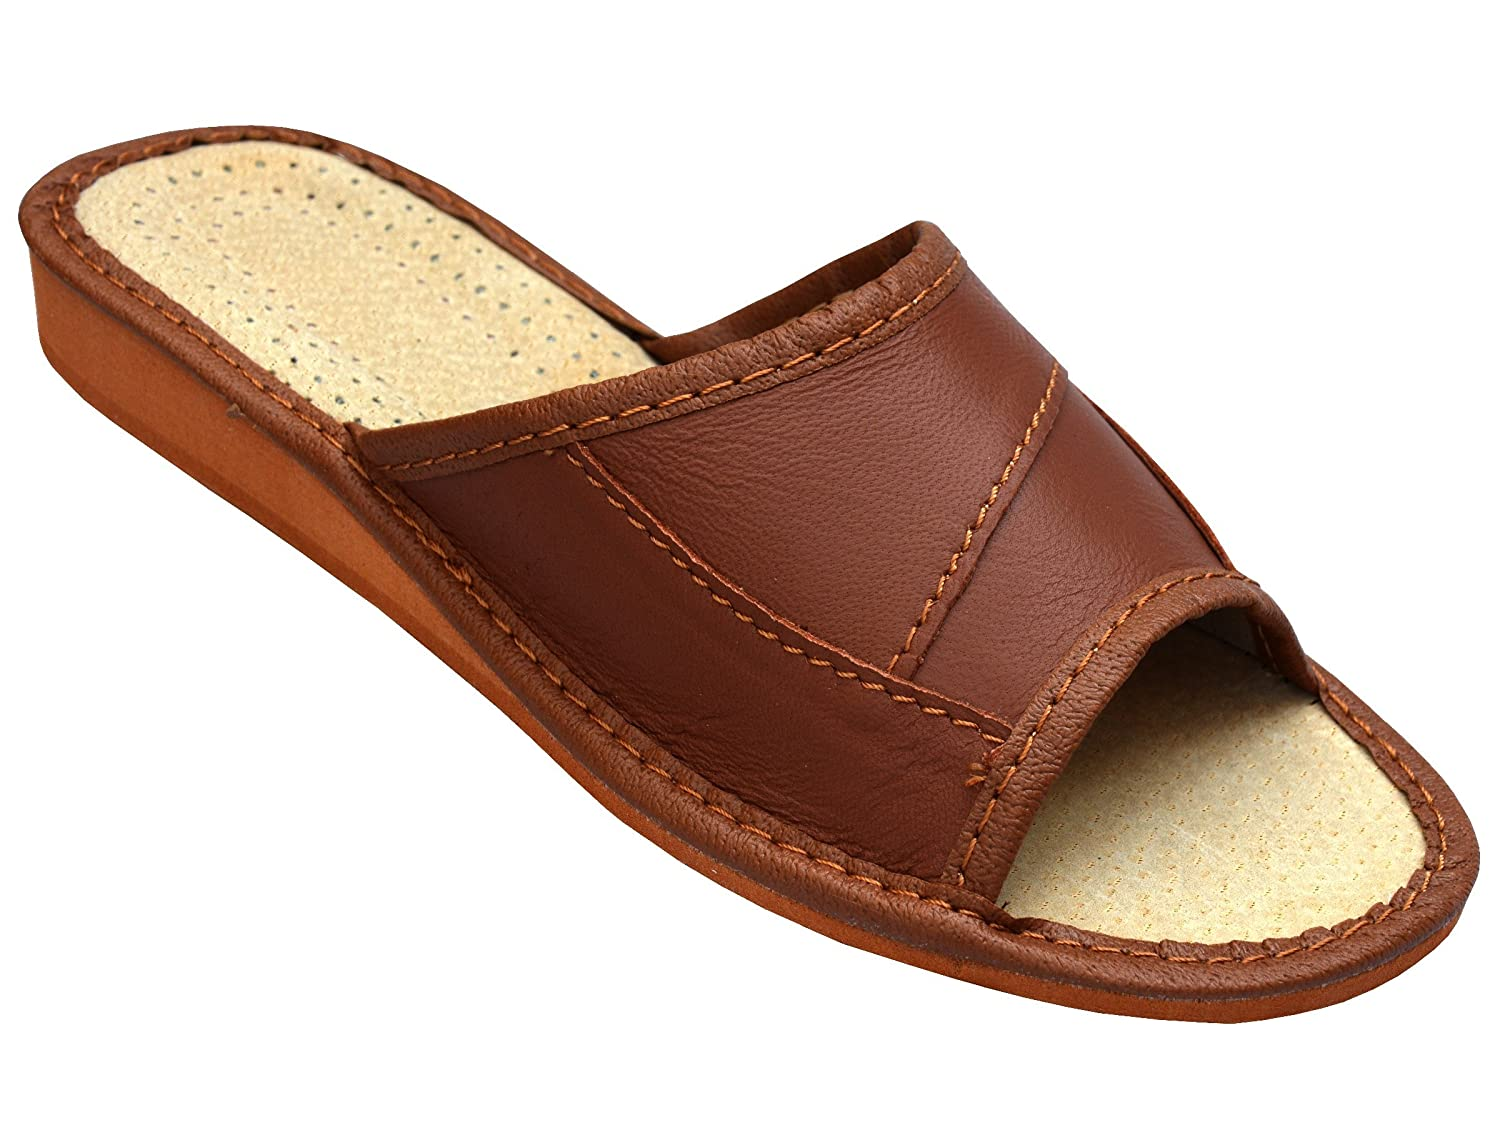 BeComfy Chaussons Confort Naturel Cuir Confort 19994 Chaussons Pantoufles Taille 35-41 Chaussons Marron c5f27b1 - fast-weightloss-diet.space